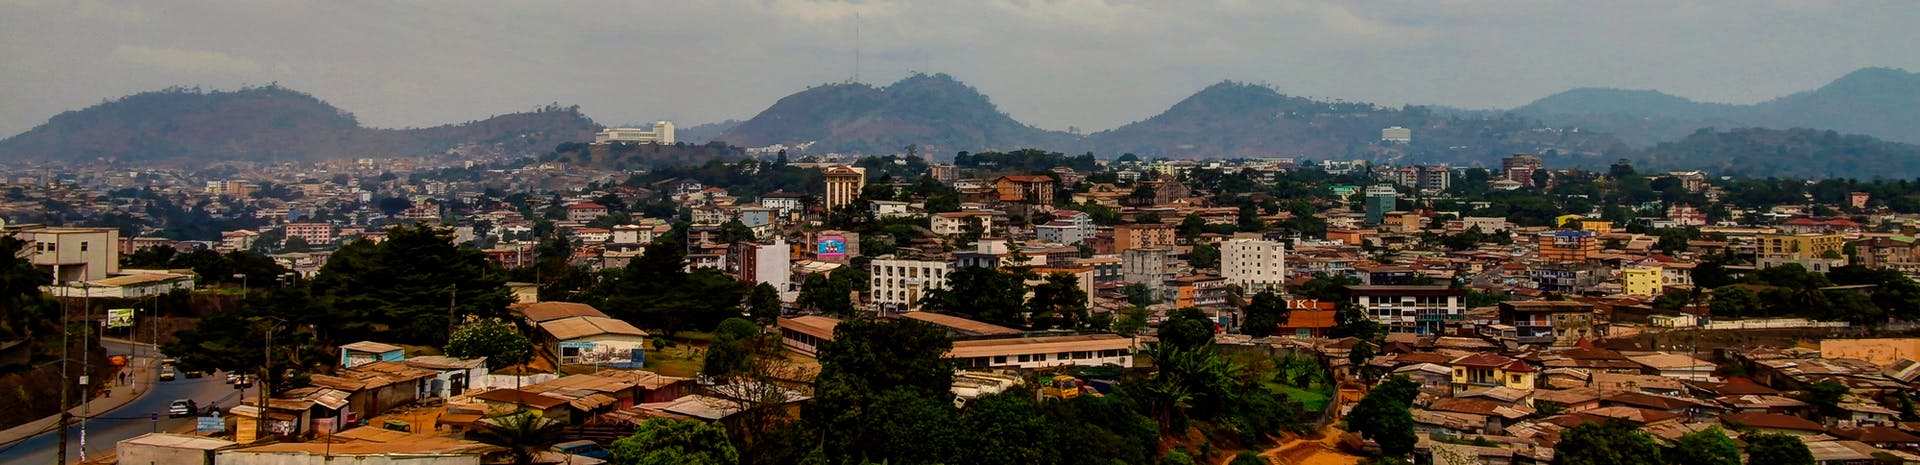 Picture of Yaounde